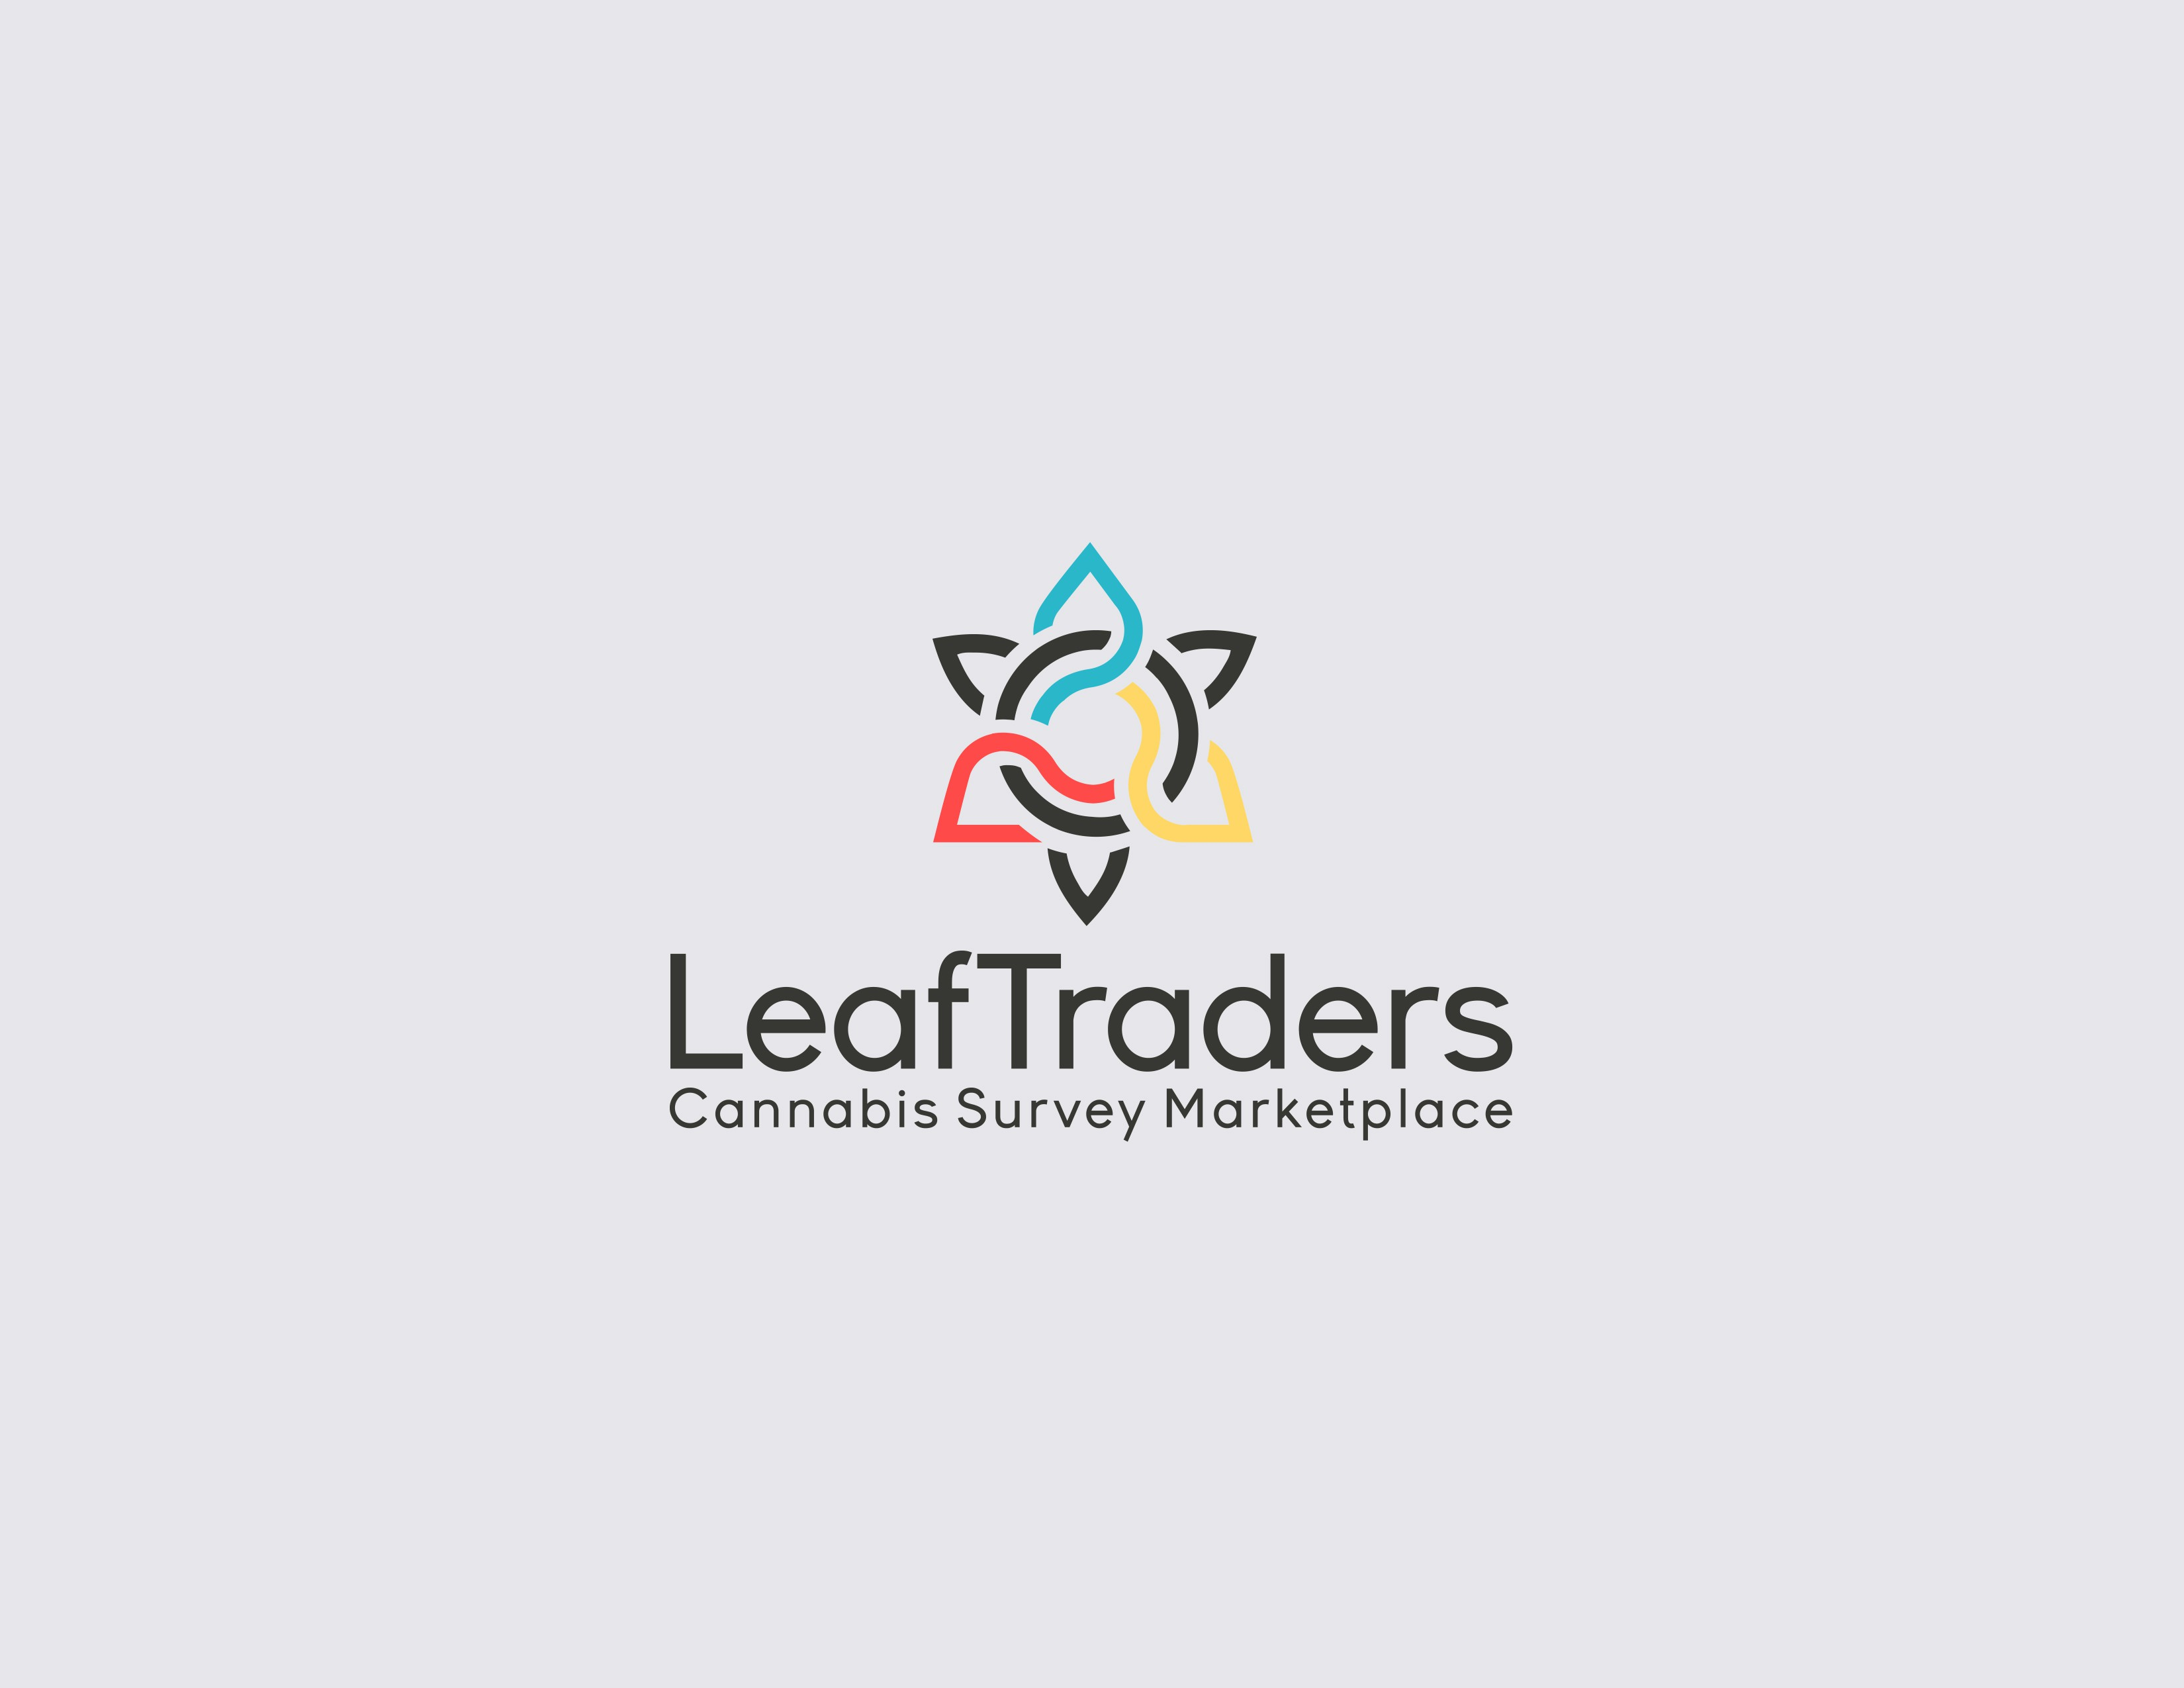 Design a fresh, new, and modern logo for Leaf Traders, a Cannabis Data Company Startup.